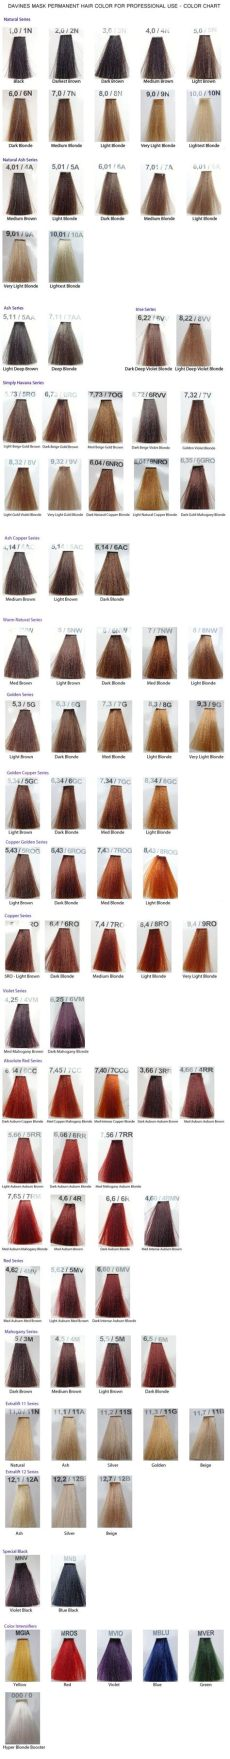 davines mask color chart hair - Davines Mask With Vibrachrom Color Chart